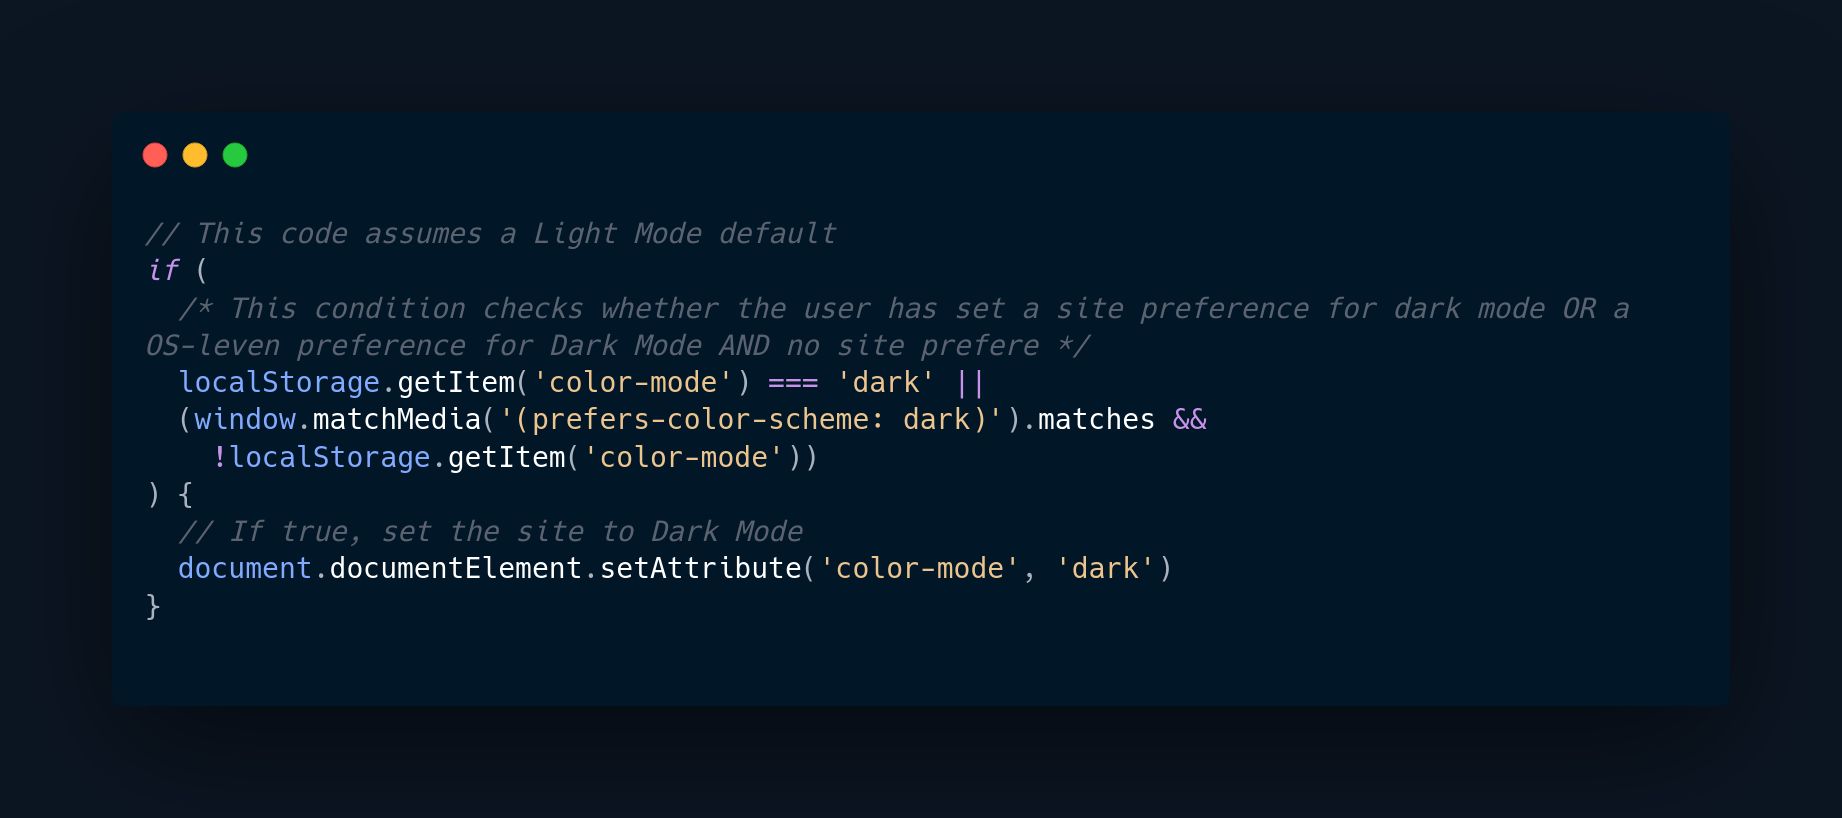 Ensure that OS-level or site color-mode preferences are respected